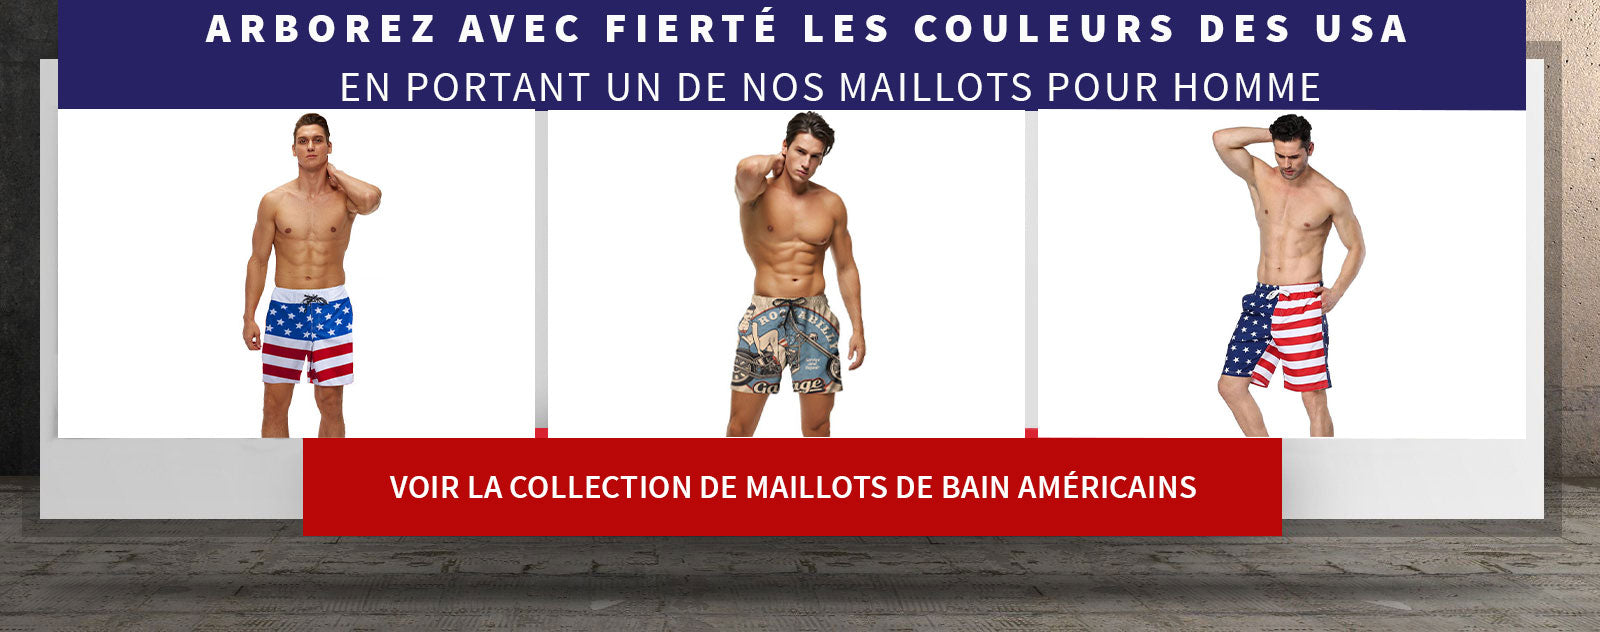 maillots americains homme